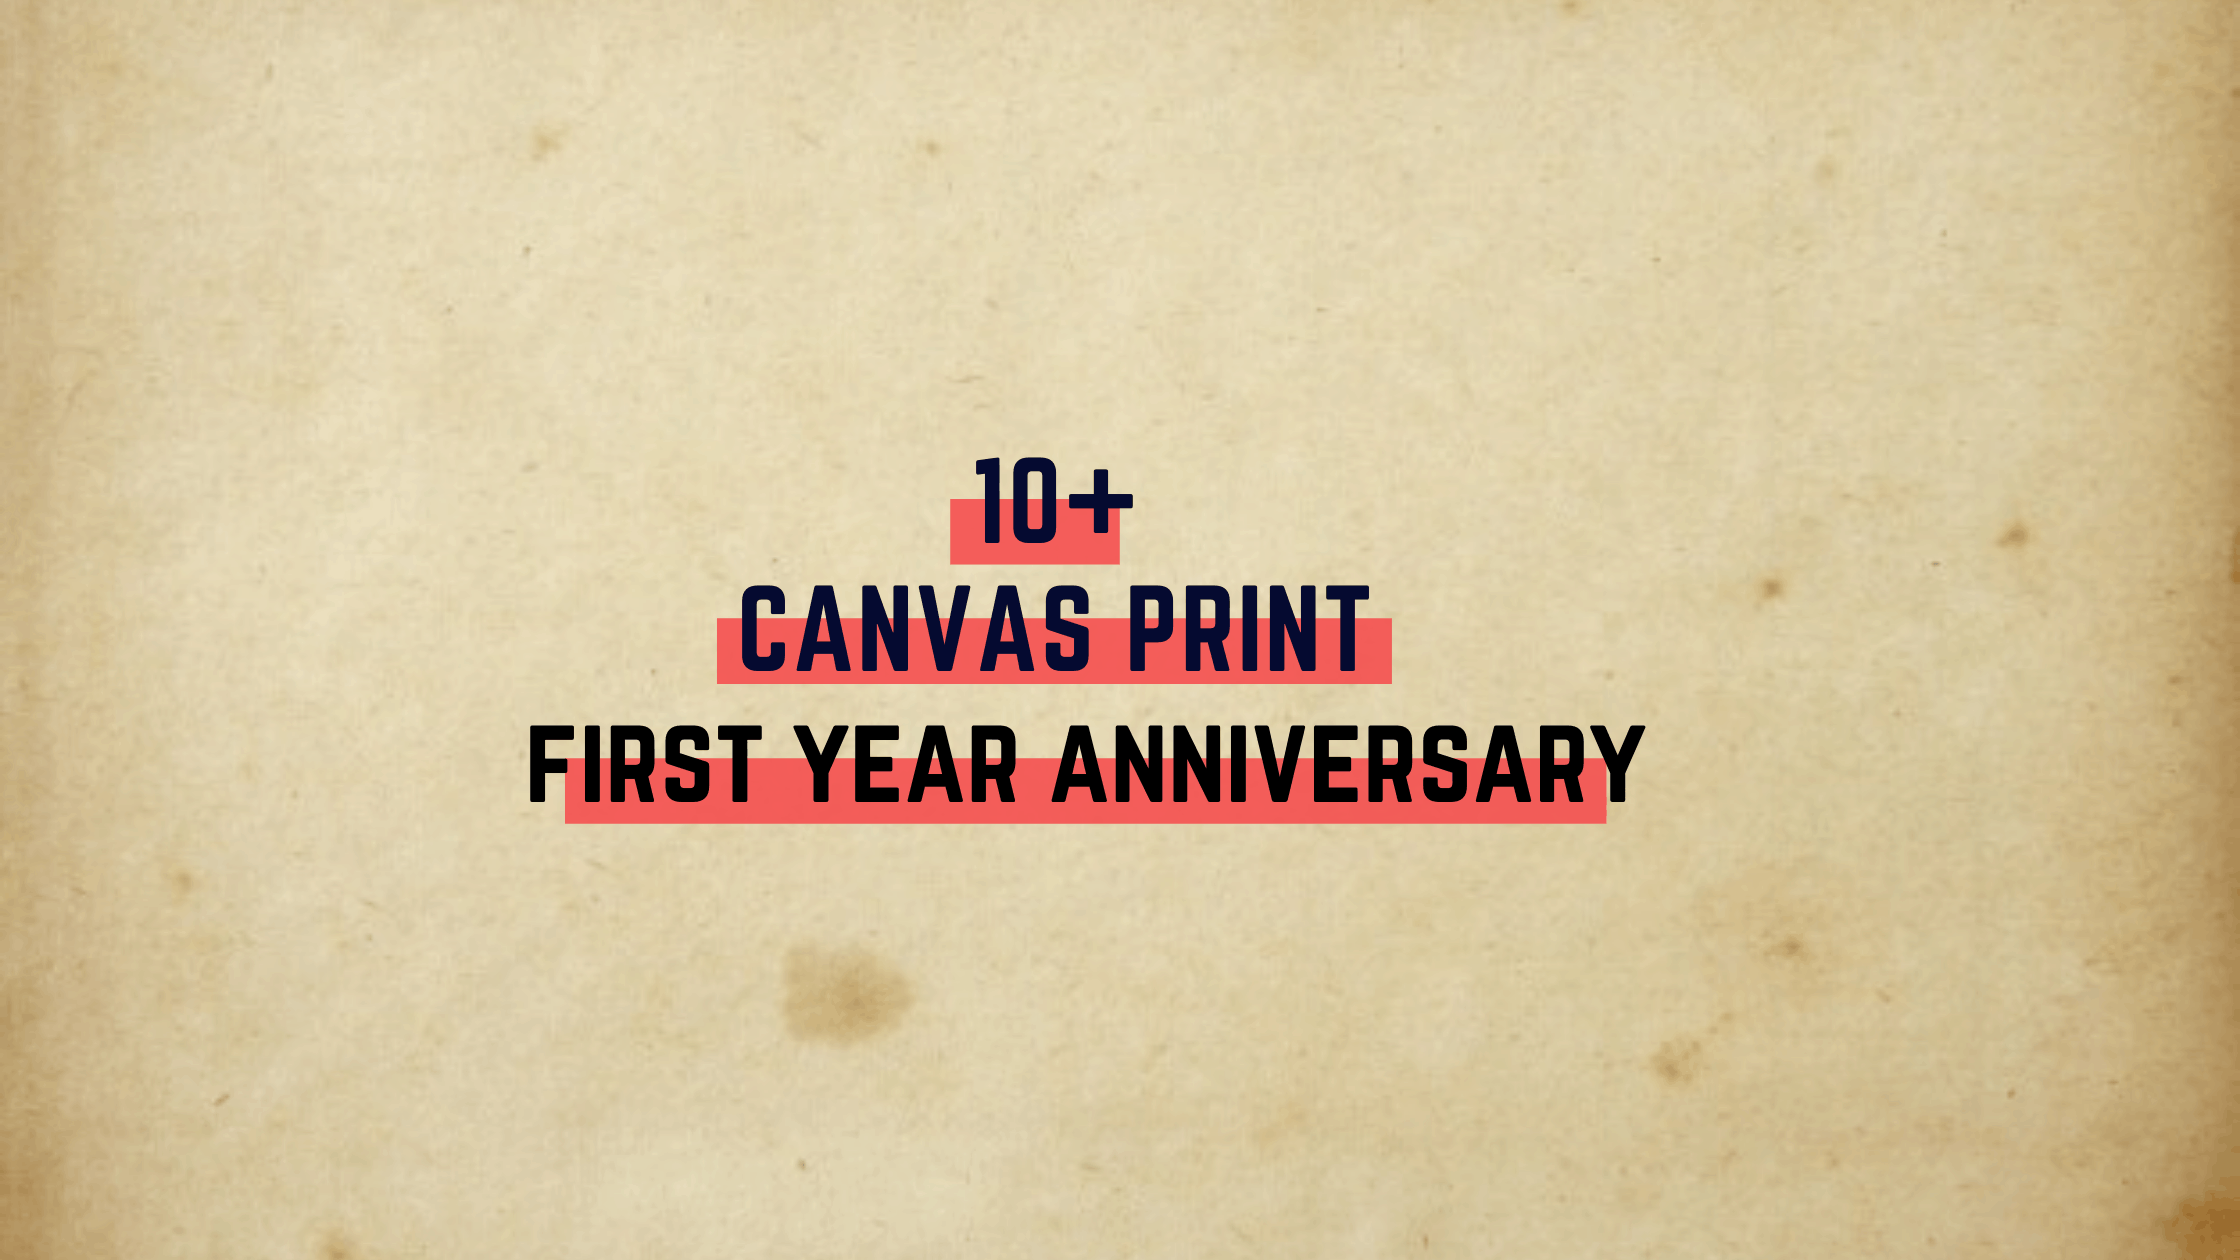 Top 10 First Wedding Anniversary Canvas Print That Will Make Your Spouse Swoon